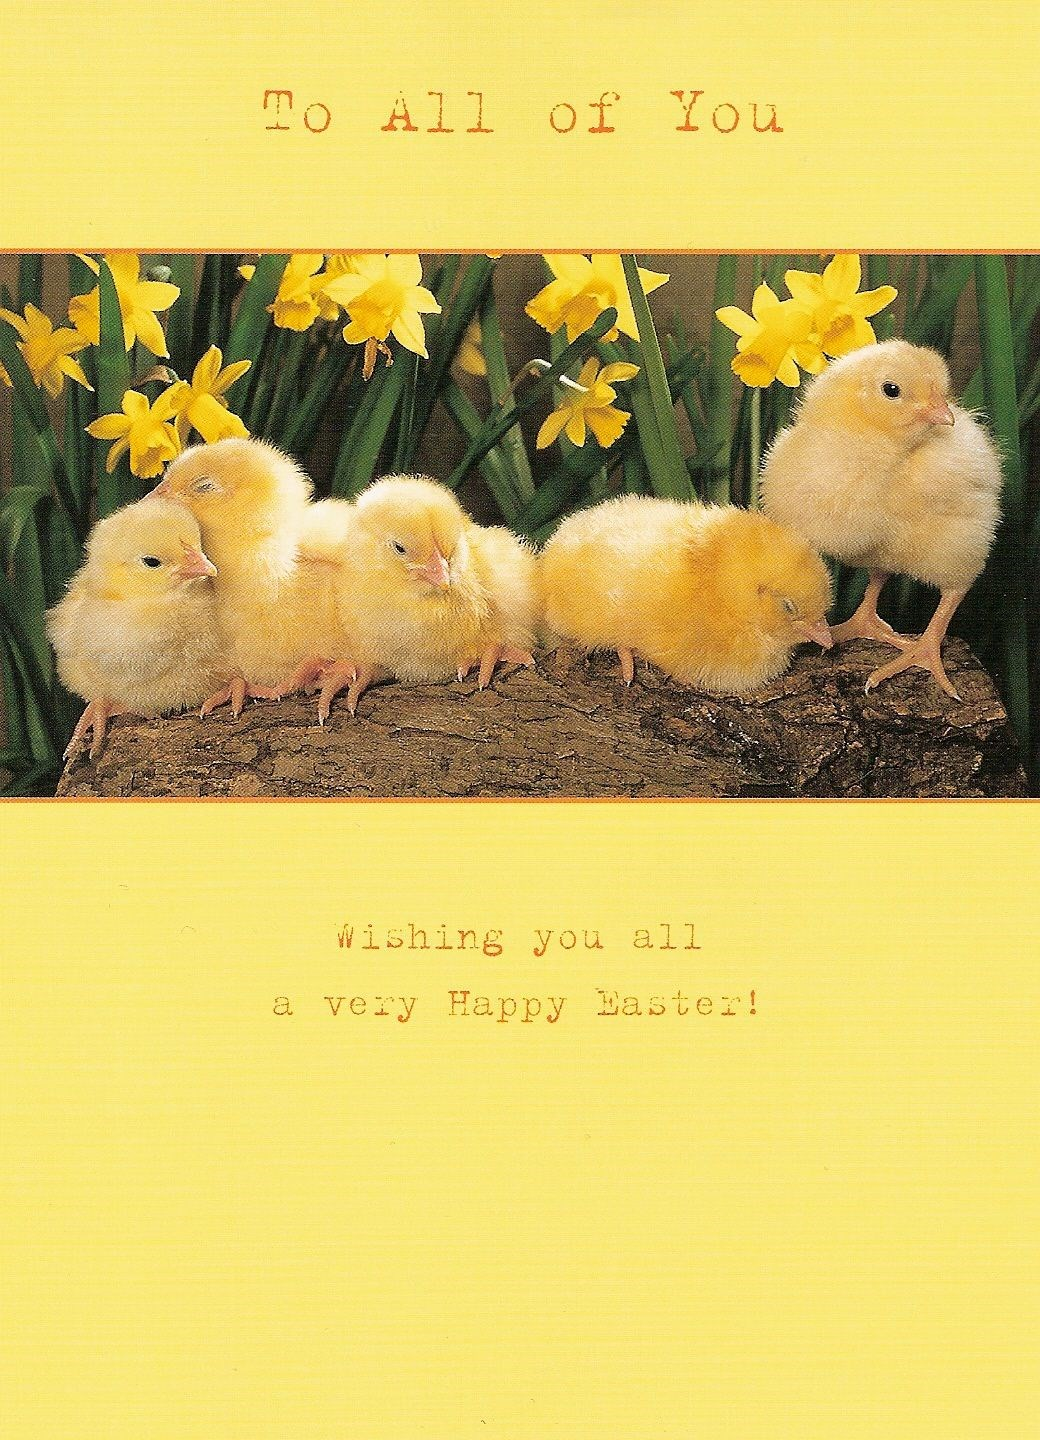 A pretty Easter card to Paul's family from Clair, Trina and families